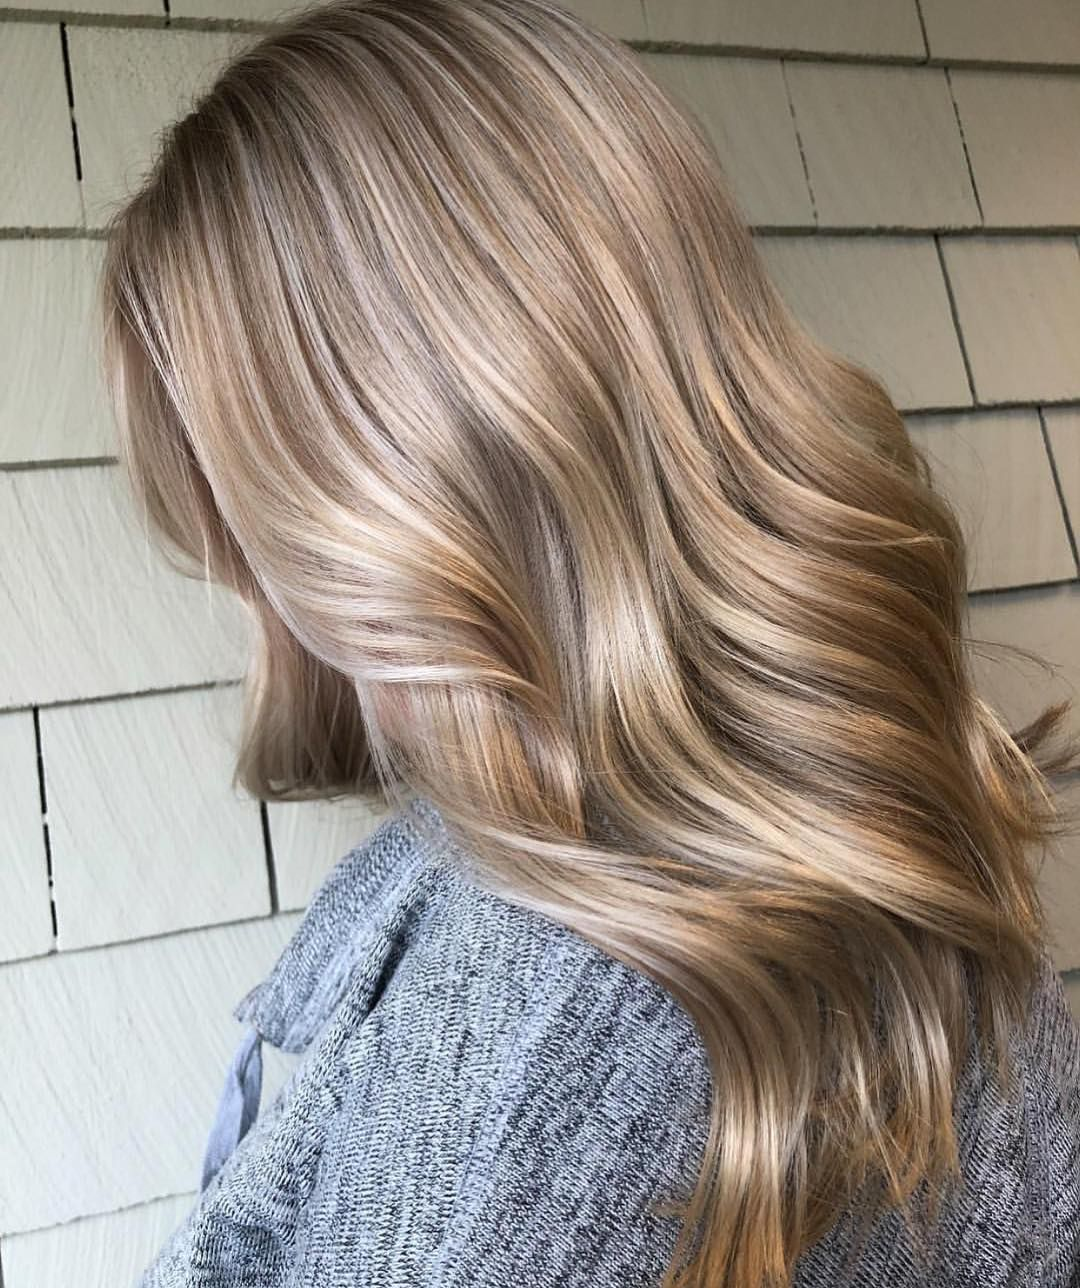 "ᴍᴀɴᴇ ɪɴᴛᴇʀᴇsᴛ ��‍️ on Instagram: ""Toffee waves by @rachelhairrevue #maneinterest"""